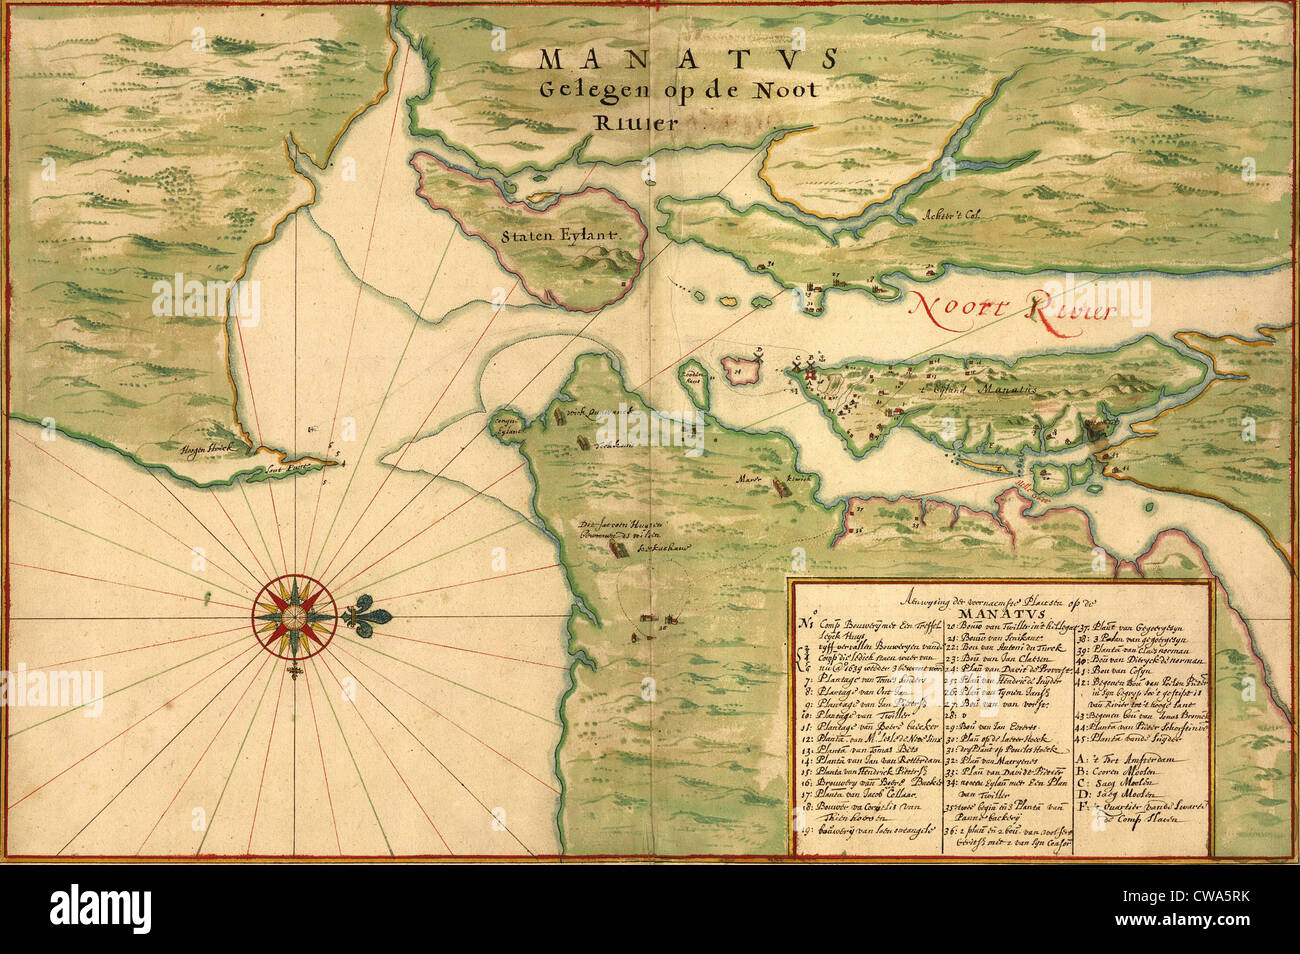 Map Of Manhattan And Bronx.New Amsterdam In 1639 Earliest Map Shows Manhattan Staten Island